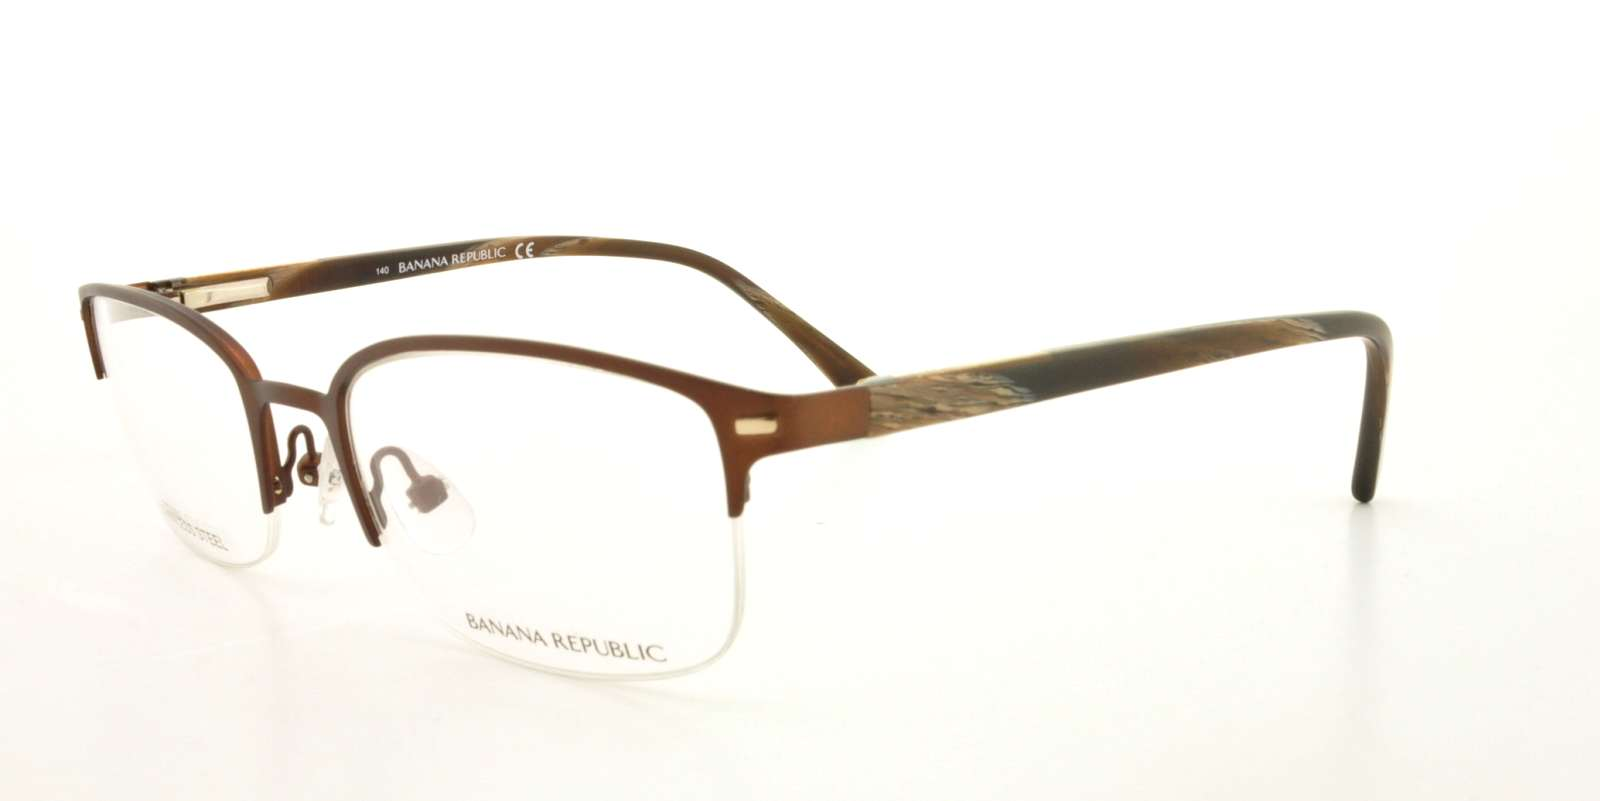 BANANA REPUBLIC Eyeglasses GARRICK 0JYS Matte Brown 49MM - Walmart.com